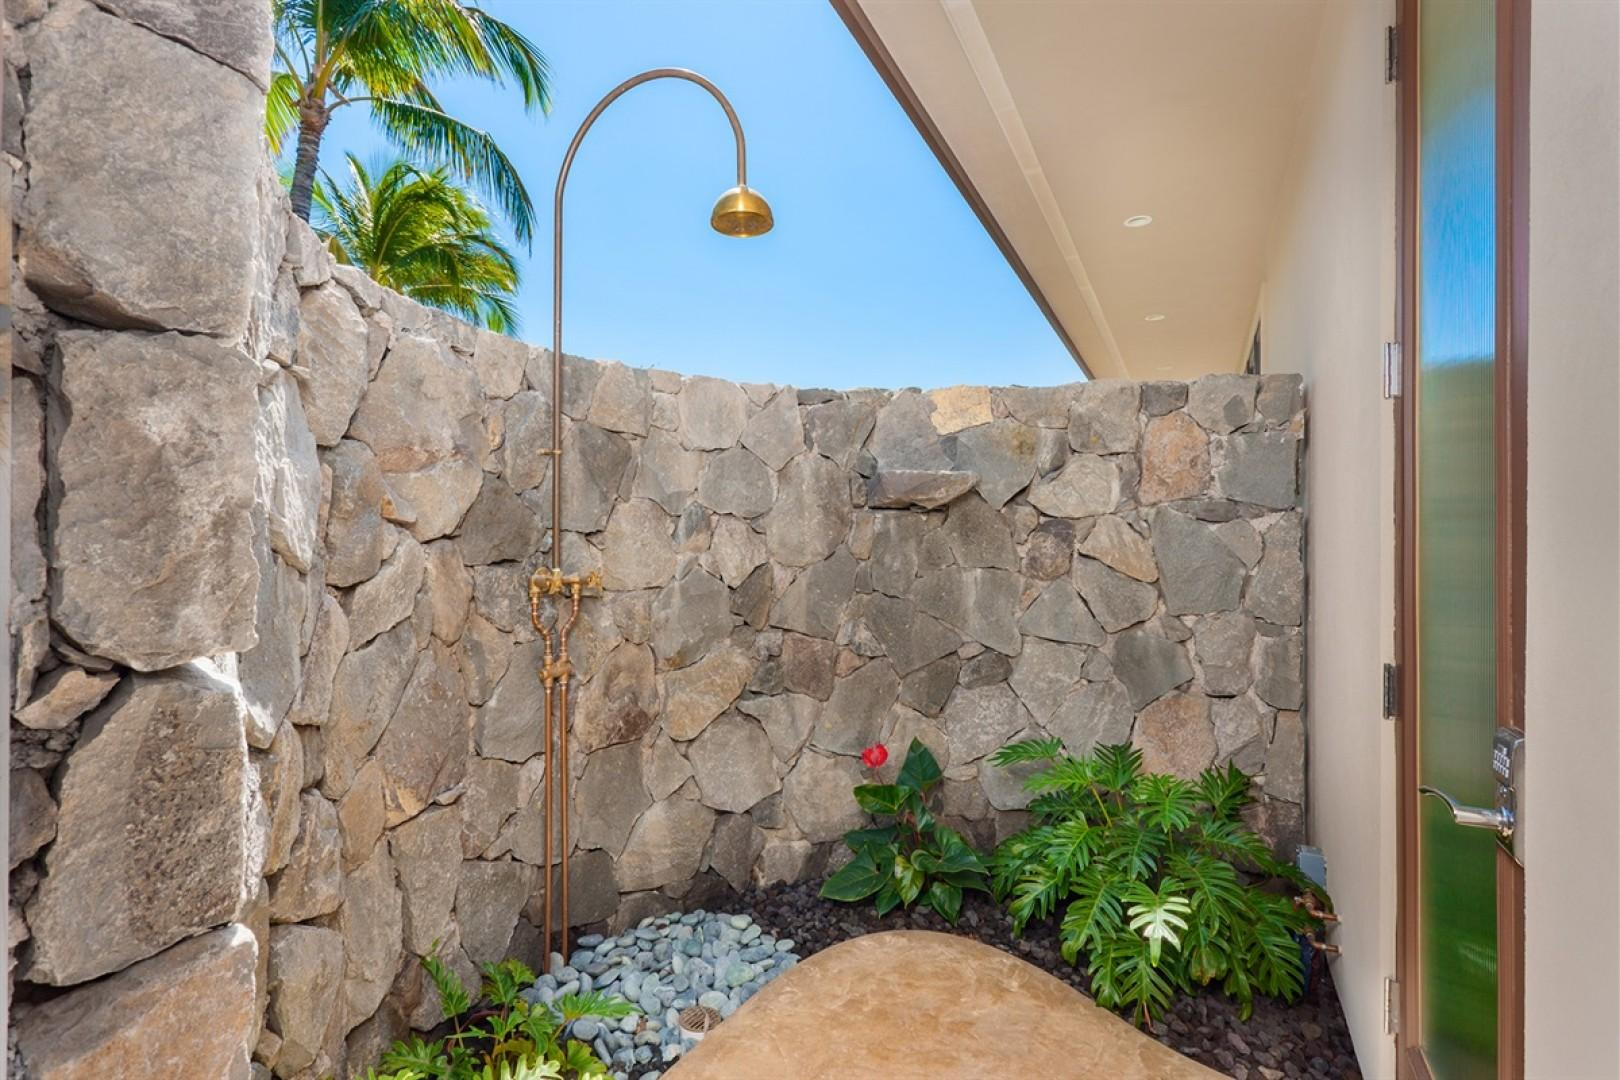 Master Suite 1 outdoor shower - a tropical treat!